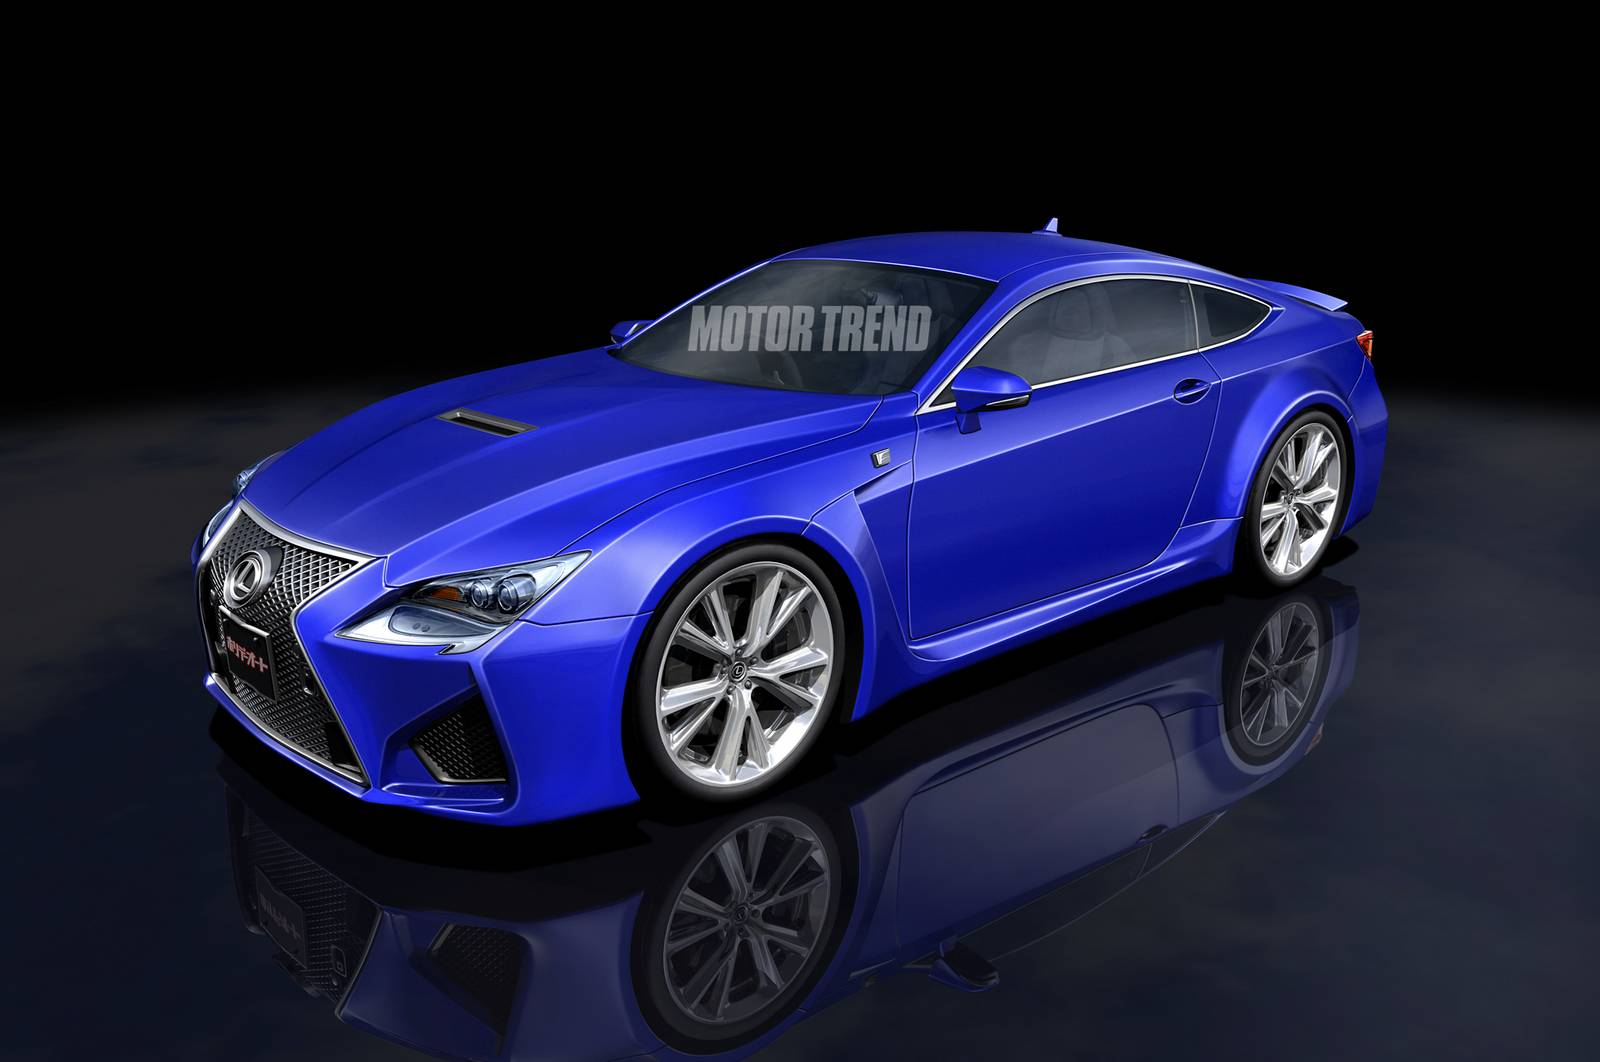 2015 Lexus RC-F To Cost Over $100k, Feature Active Aero and Hit Over